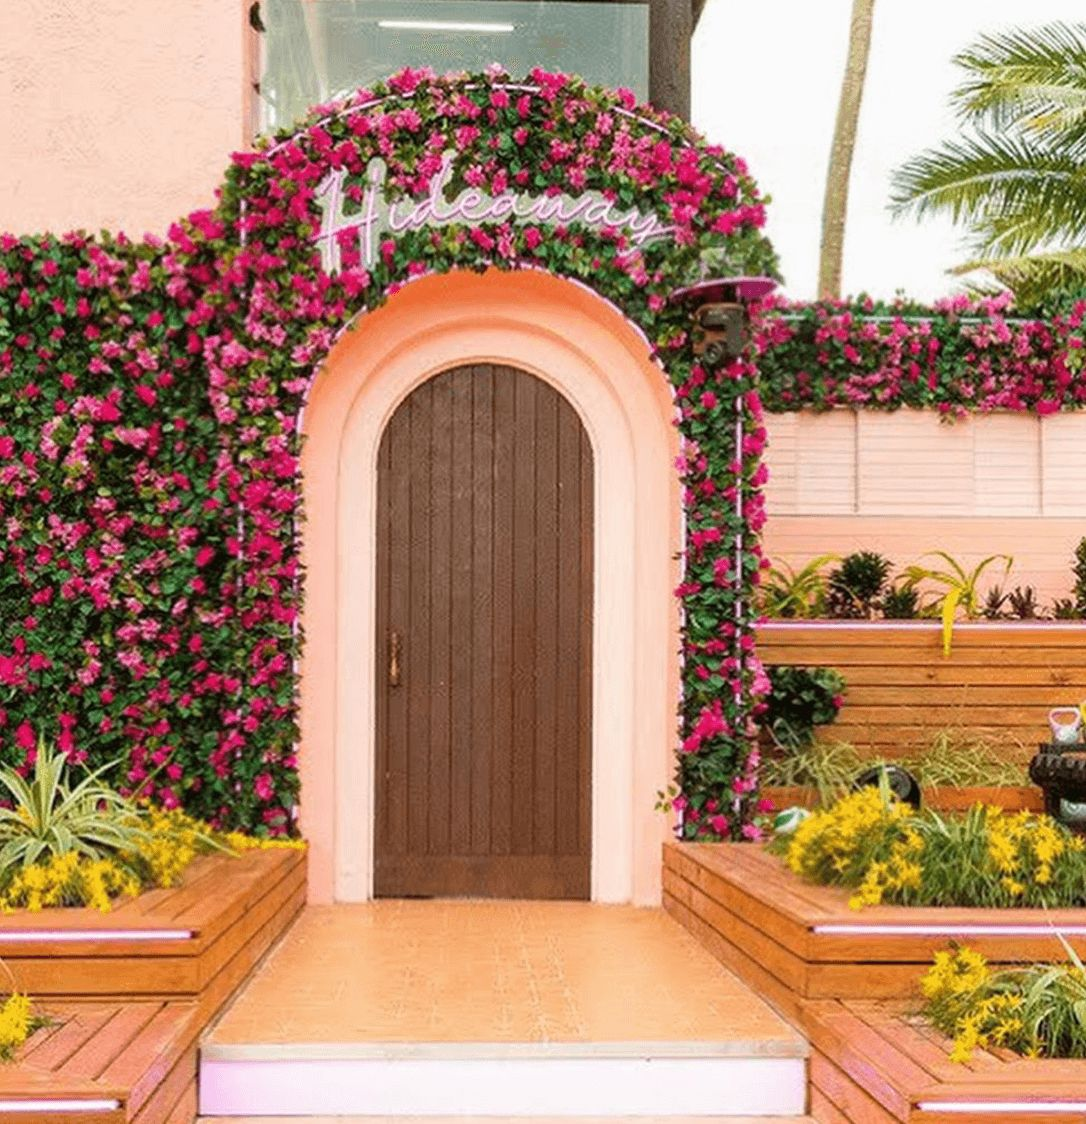 Image may contain: Love Island USA villa, Love Island USA, villa, Love Island, CBS, Fiji, Hideaway, Backyard, Door, Blossom, Flower, Arbour, Plant, Garden, Yard, Nature, Outdoors